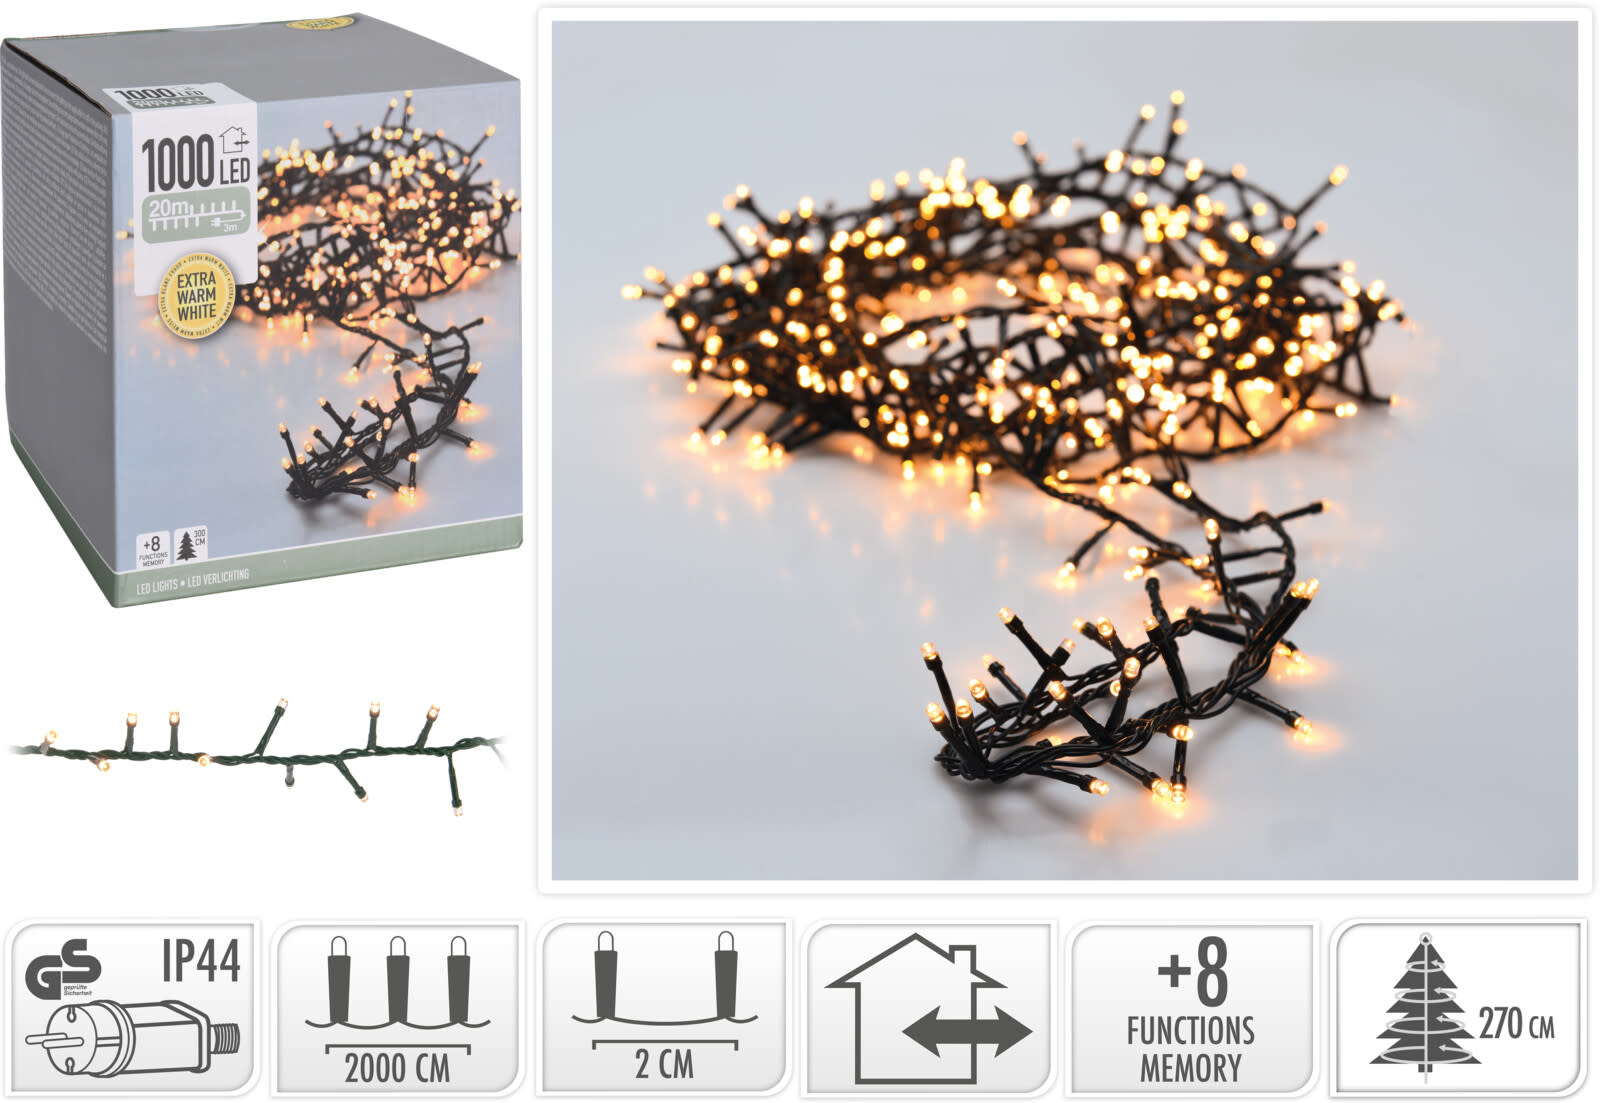 MICROCLUSTER 1000LED EXTRA WW-2